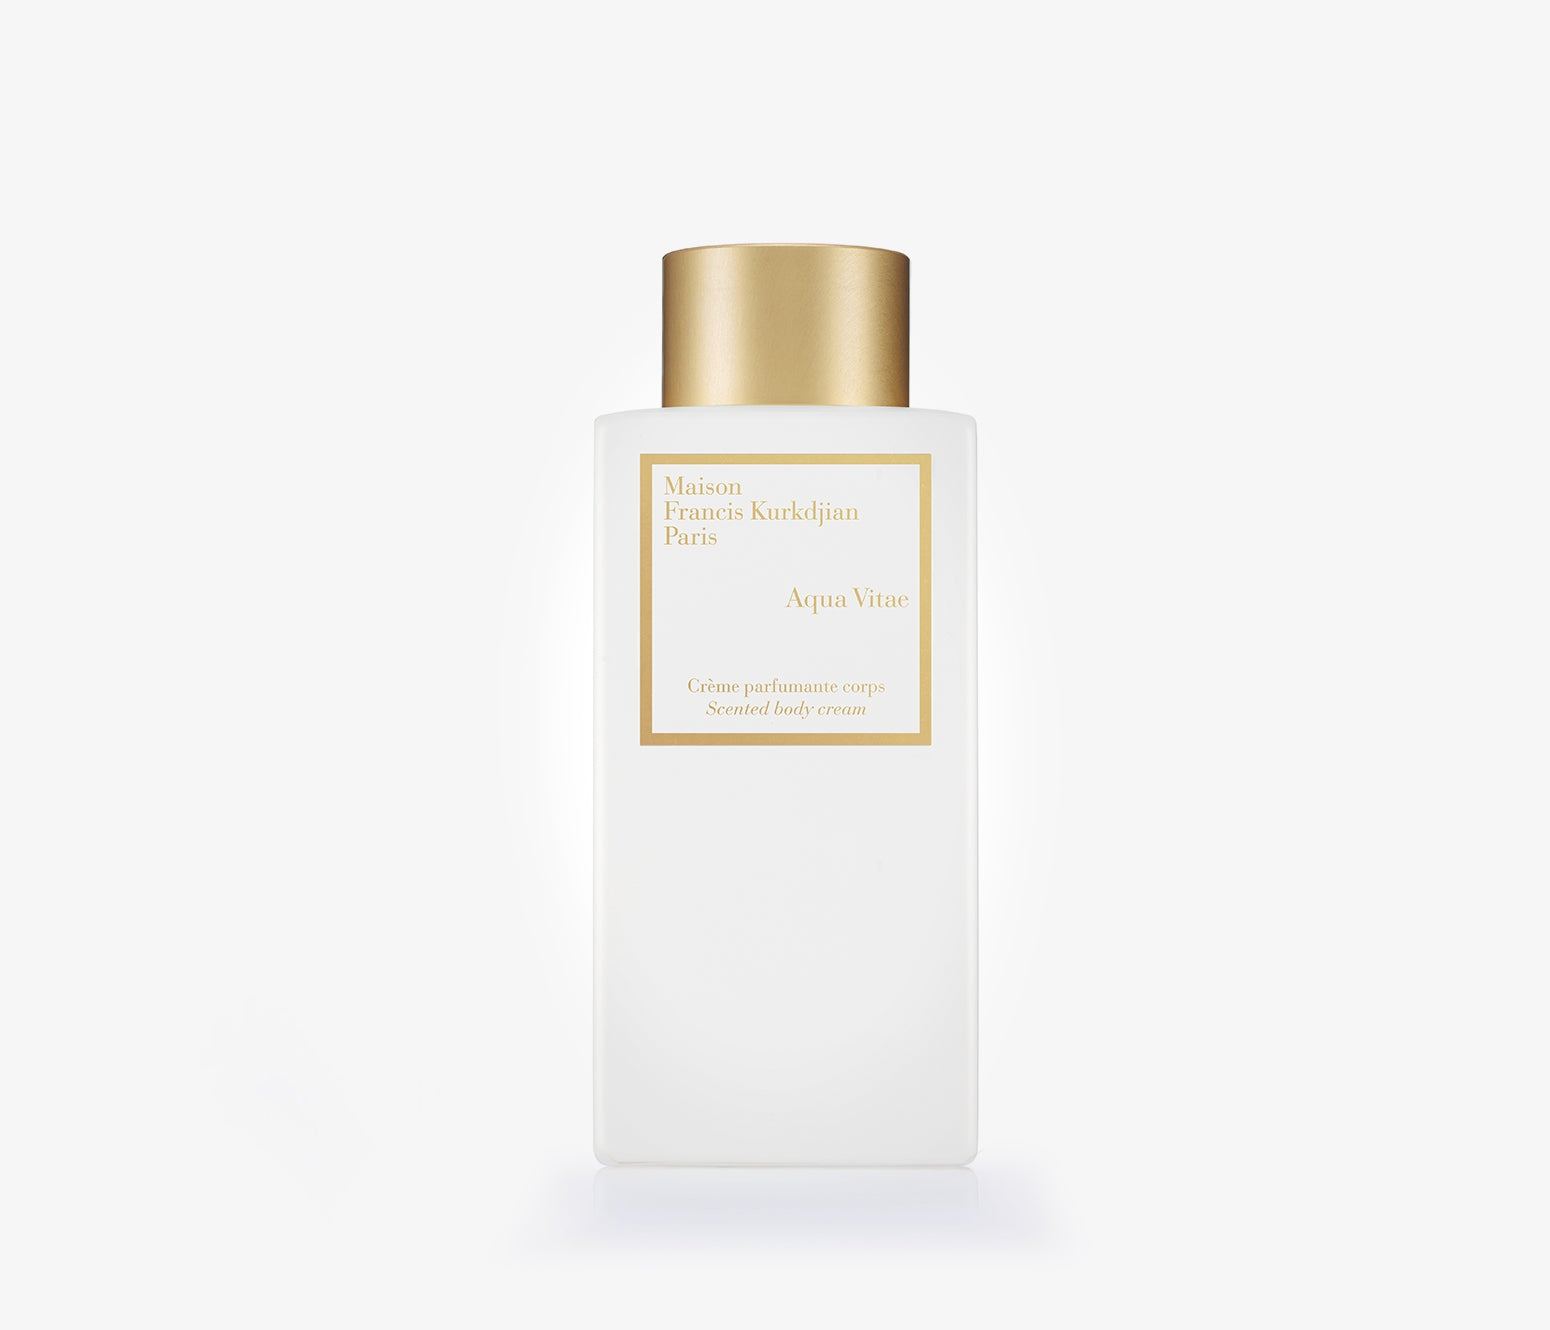 Maison Francis Kurkdjian - Aqua Vitae Body Cream - 250ml - ZYZ001 - product image - Body Cream - Les Senteurs